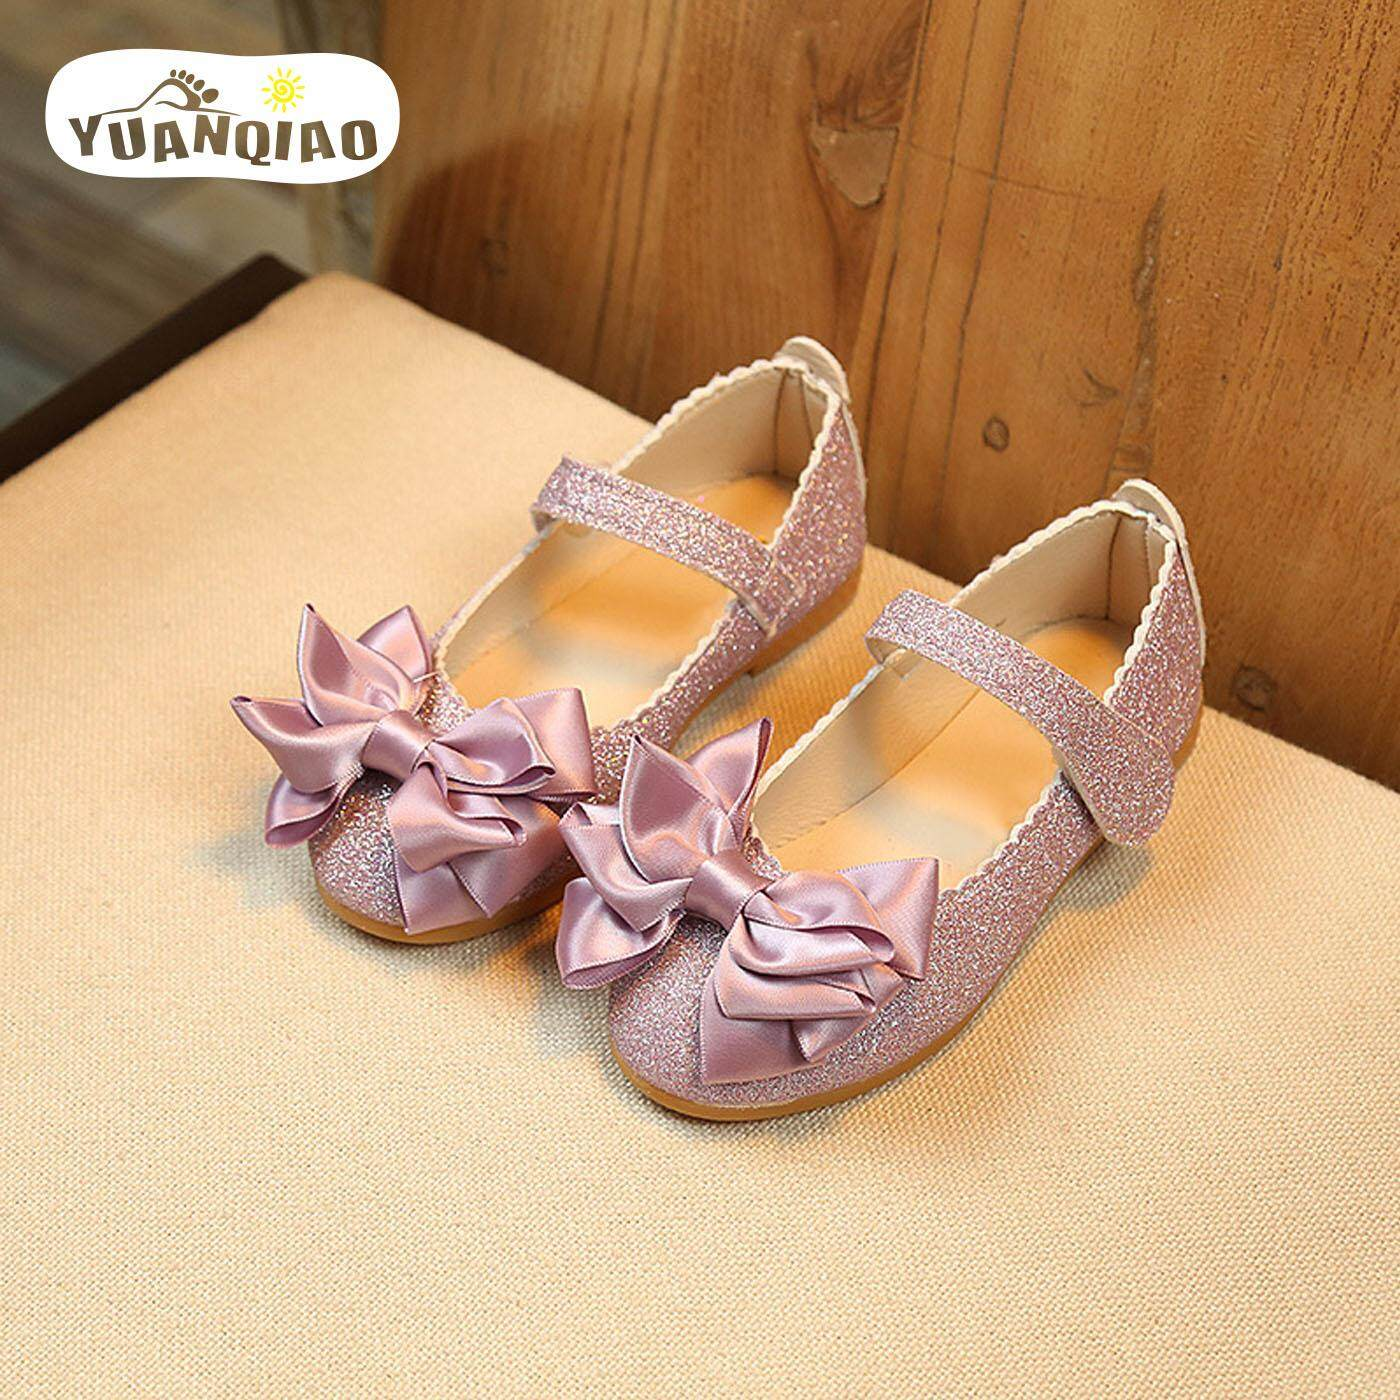 64c111d4affe YUANQIAO New Kids Shoes Girls Shoes Bright Leather Sandals Princess Shoes  Girl Sandals Children Shoes